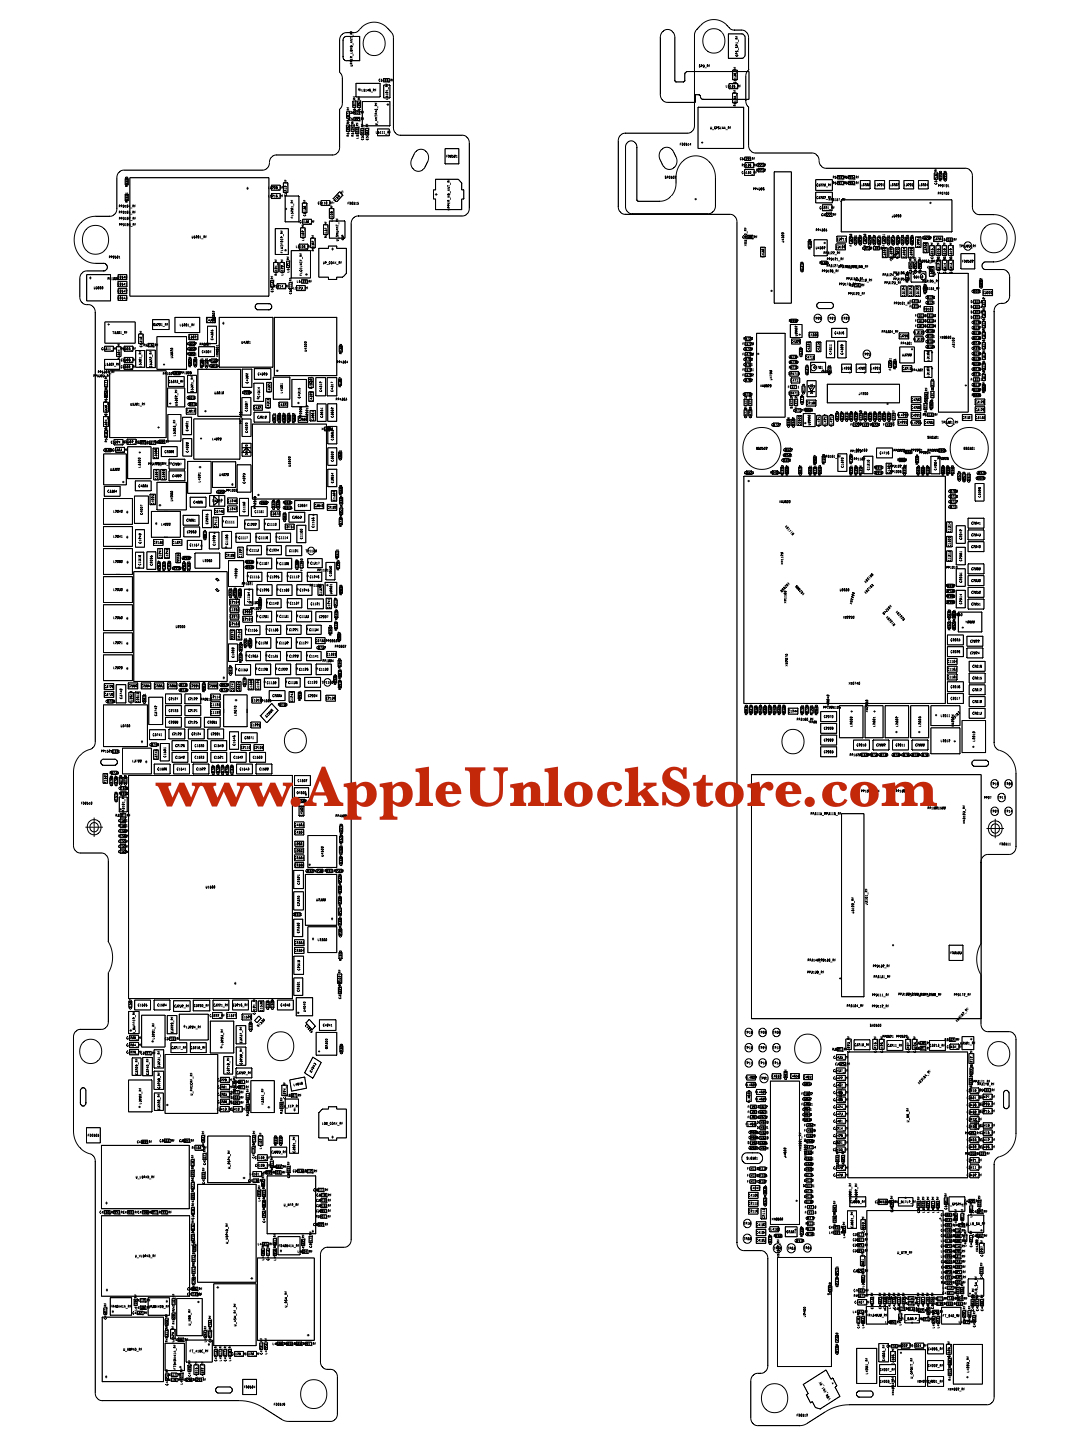 appleunlockstore    service manuals    iphone se circuit diagram service manual schematic  u0421 u0445 u0435 u043c u0430